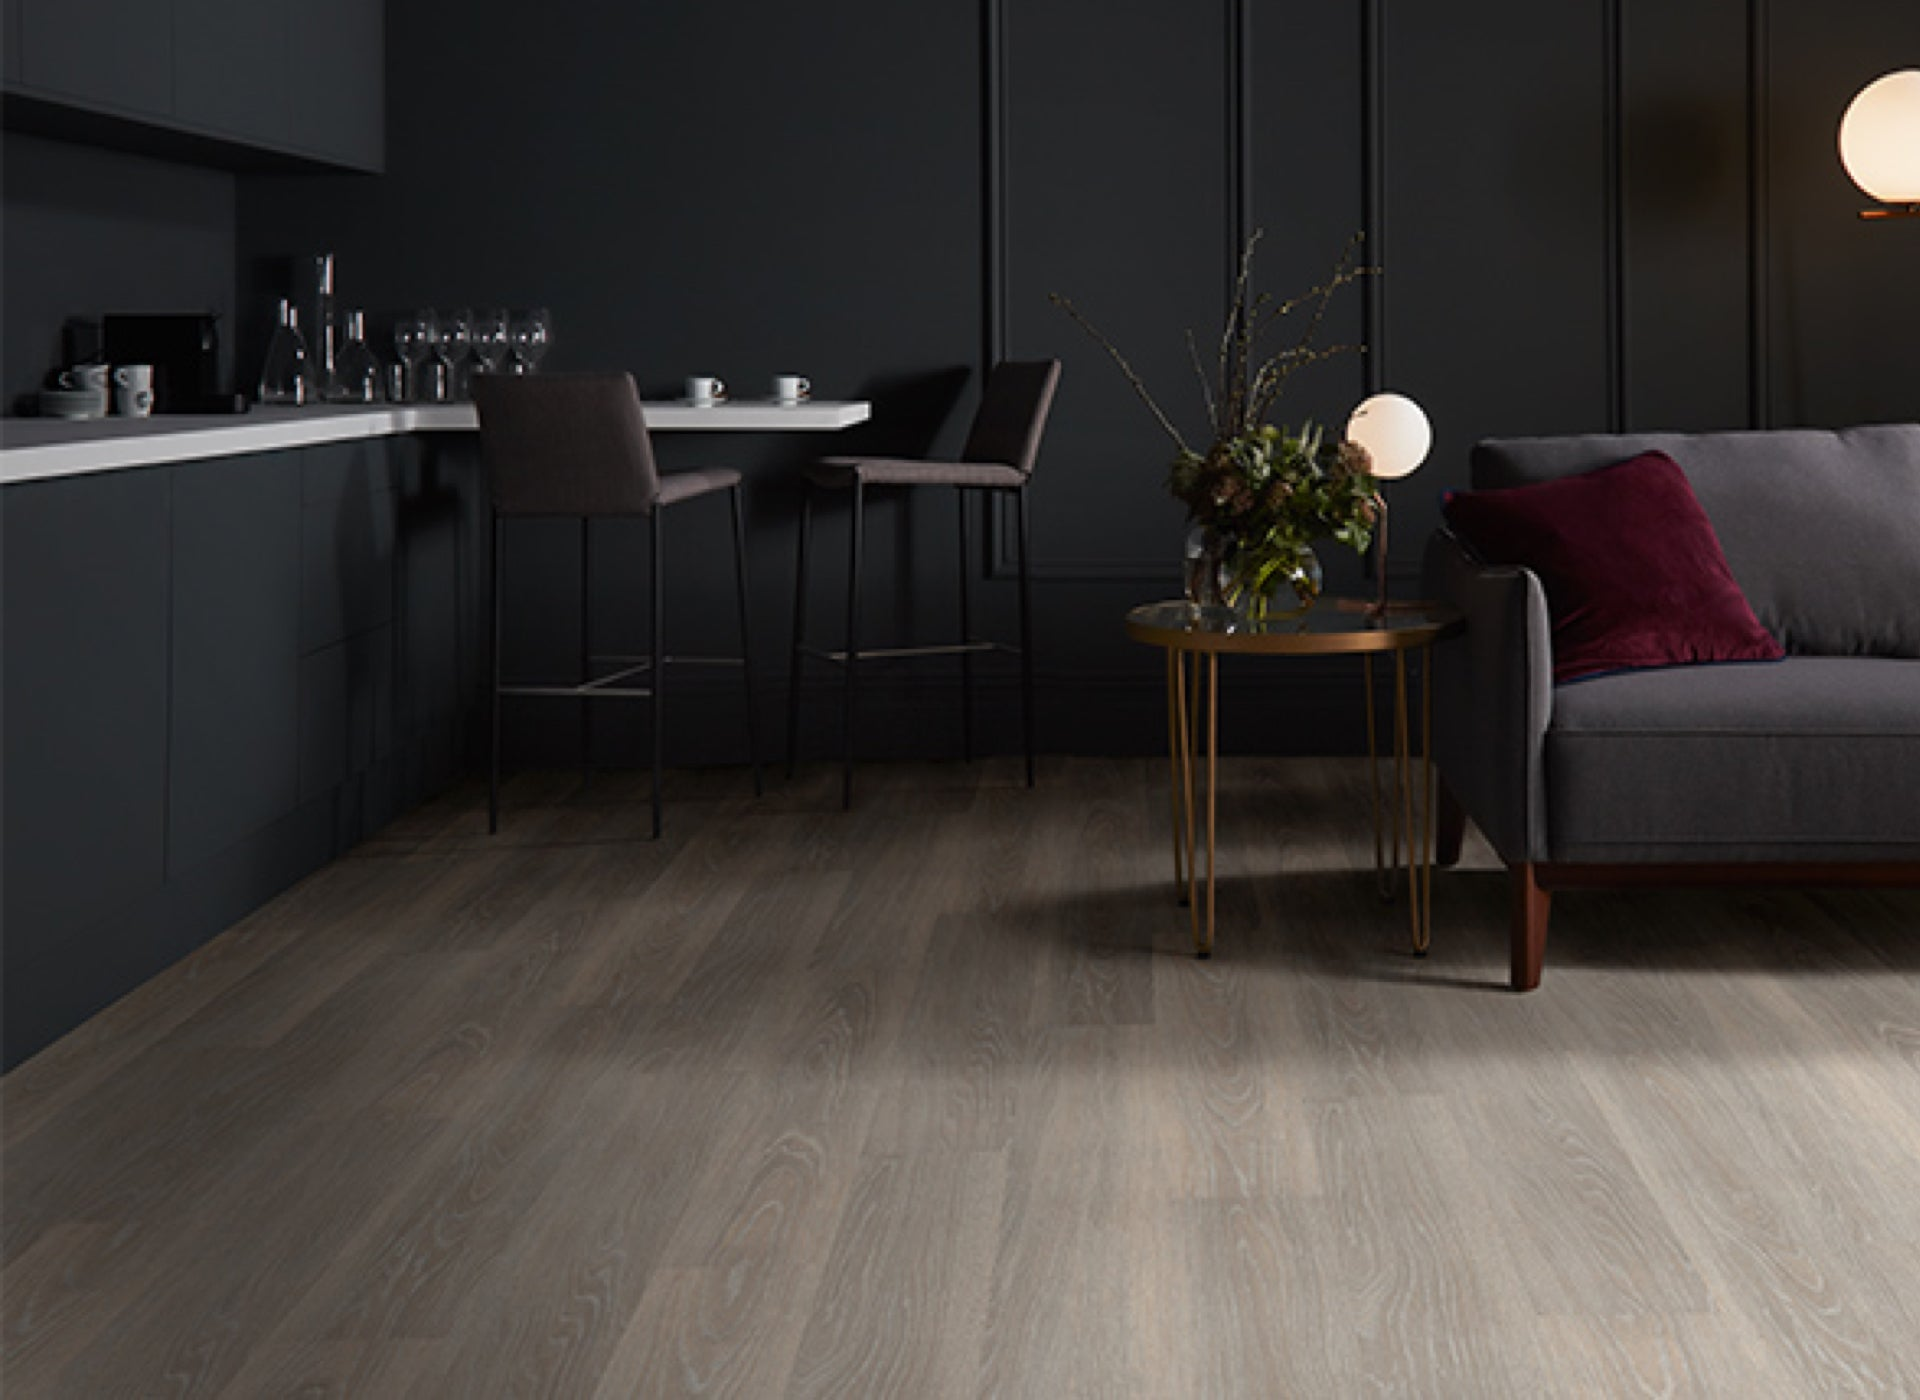 Polyflor Expona Commercial